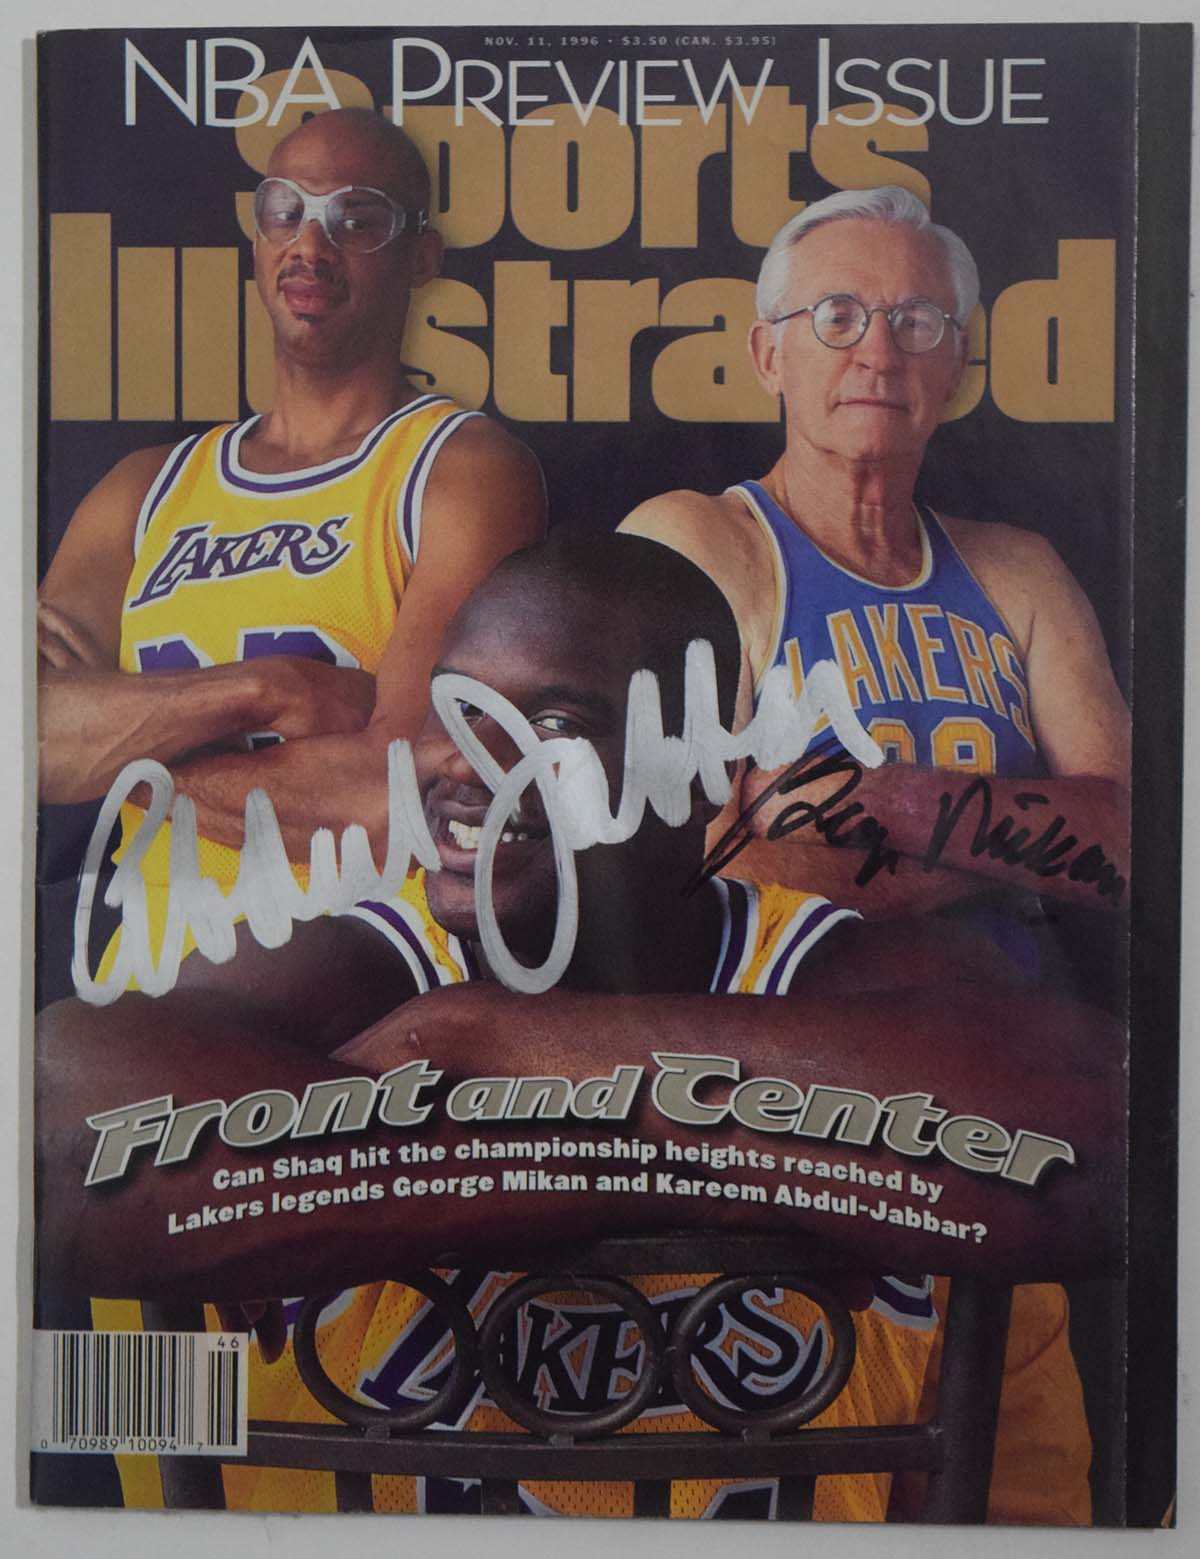 Lot #912     Jabbar/Mikan Signed Sports Illustrated (11/11/96) Cond: 9